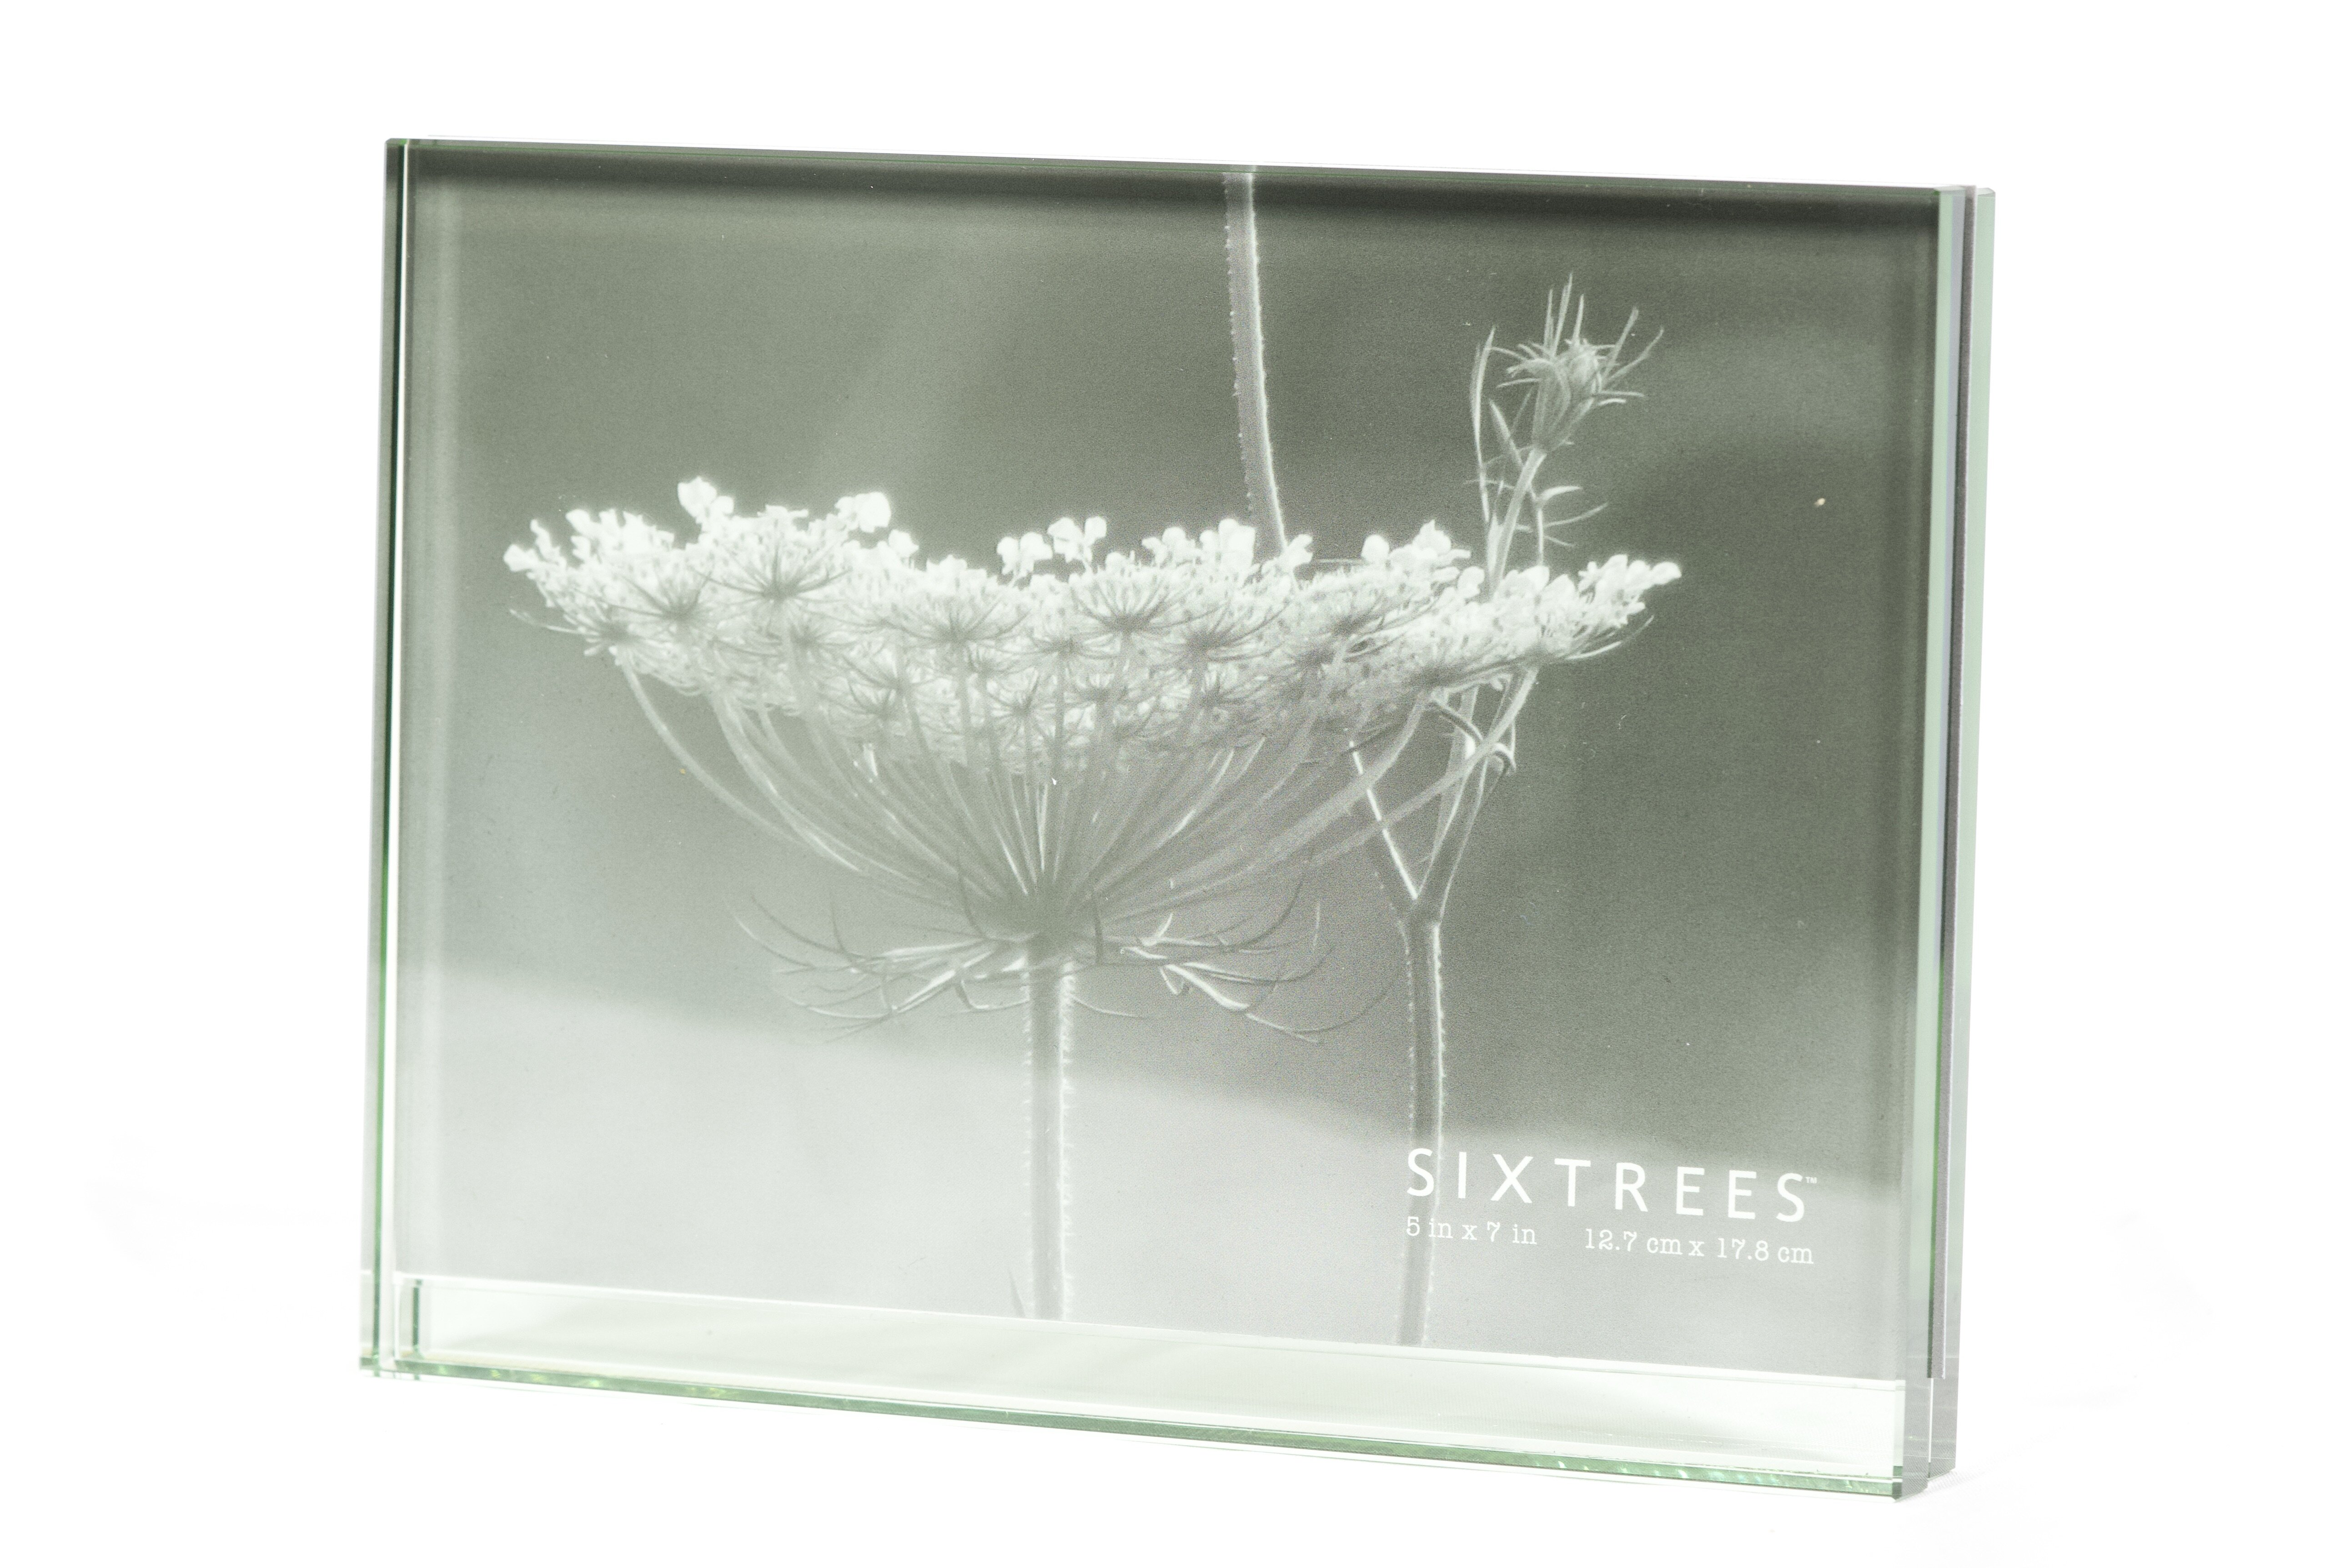 SIXTREES Mirror Deco Luxury Frame 4 by 6-Inch Silver